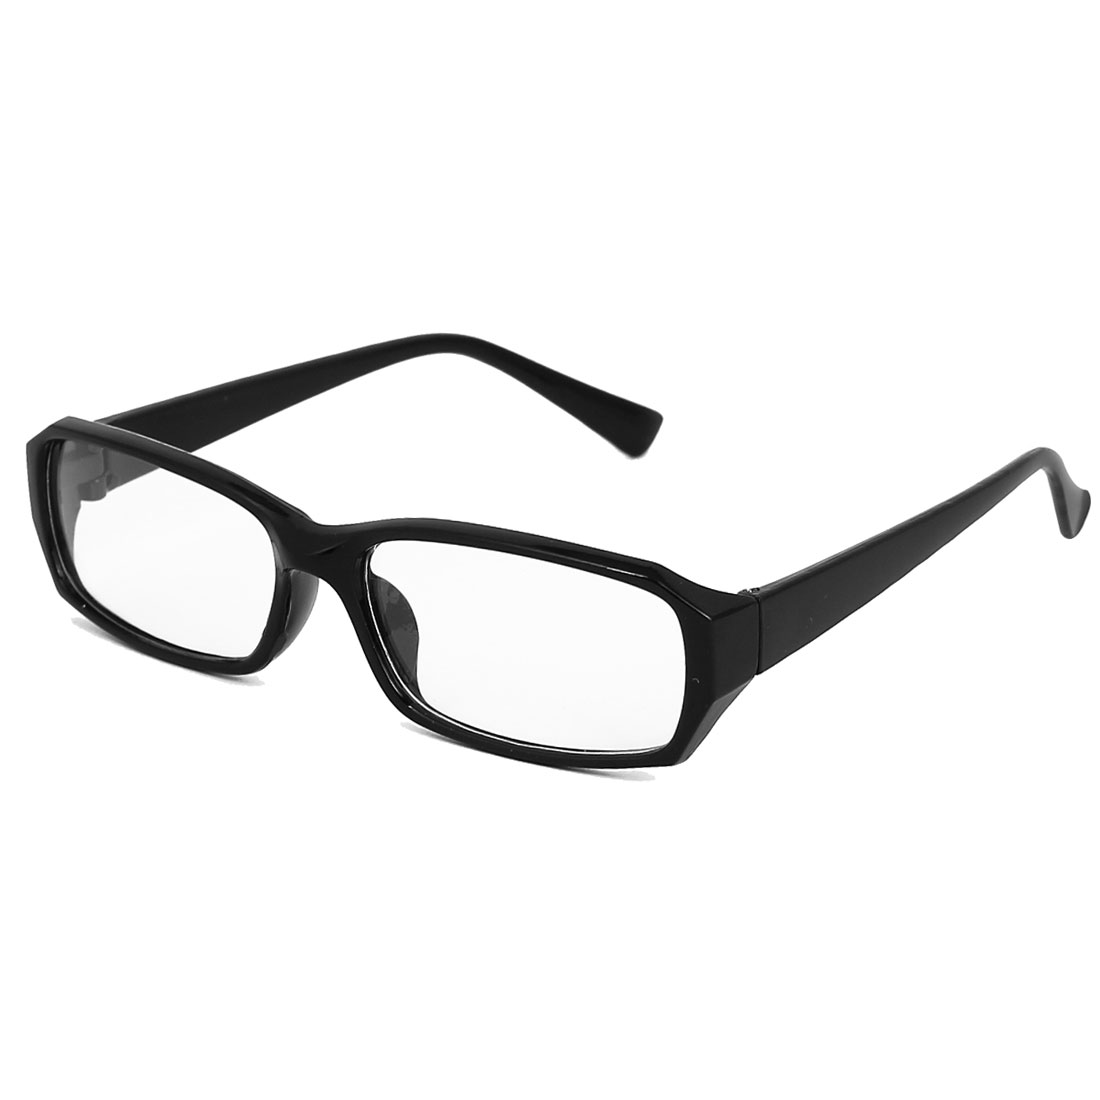 Plastic Rim Clear Lens Plano Glasses for Men And Women